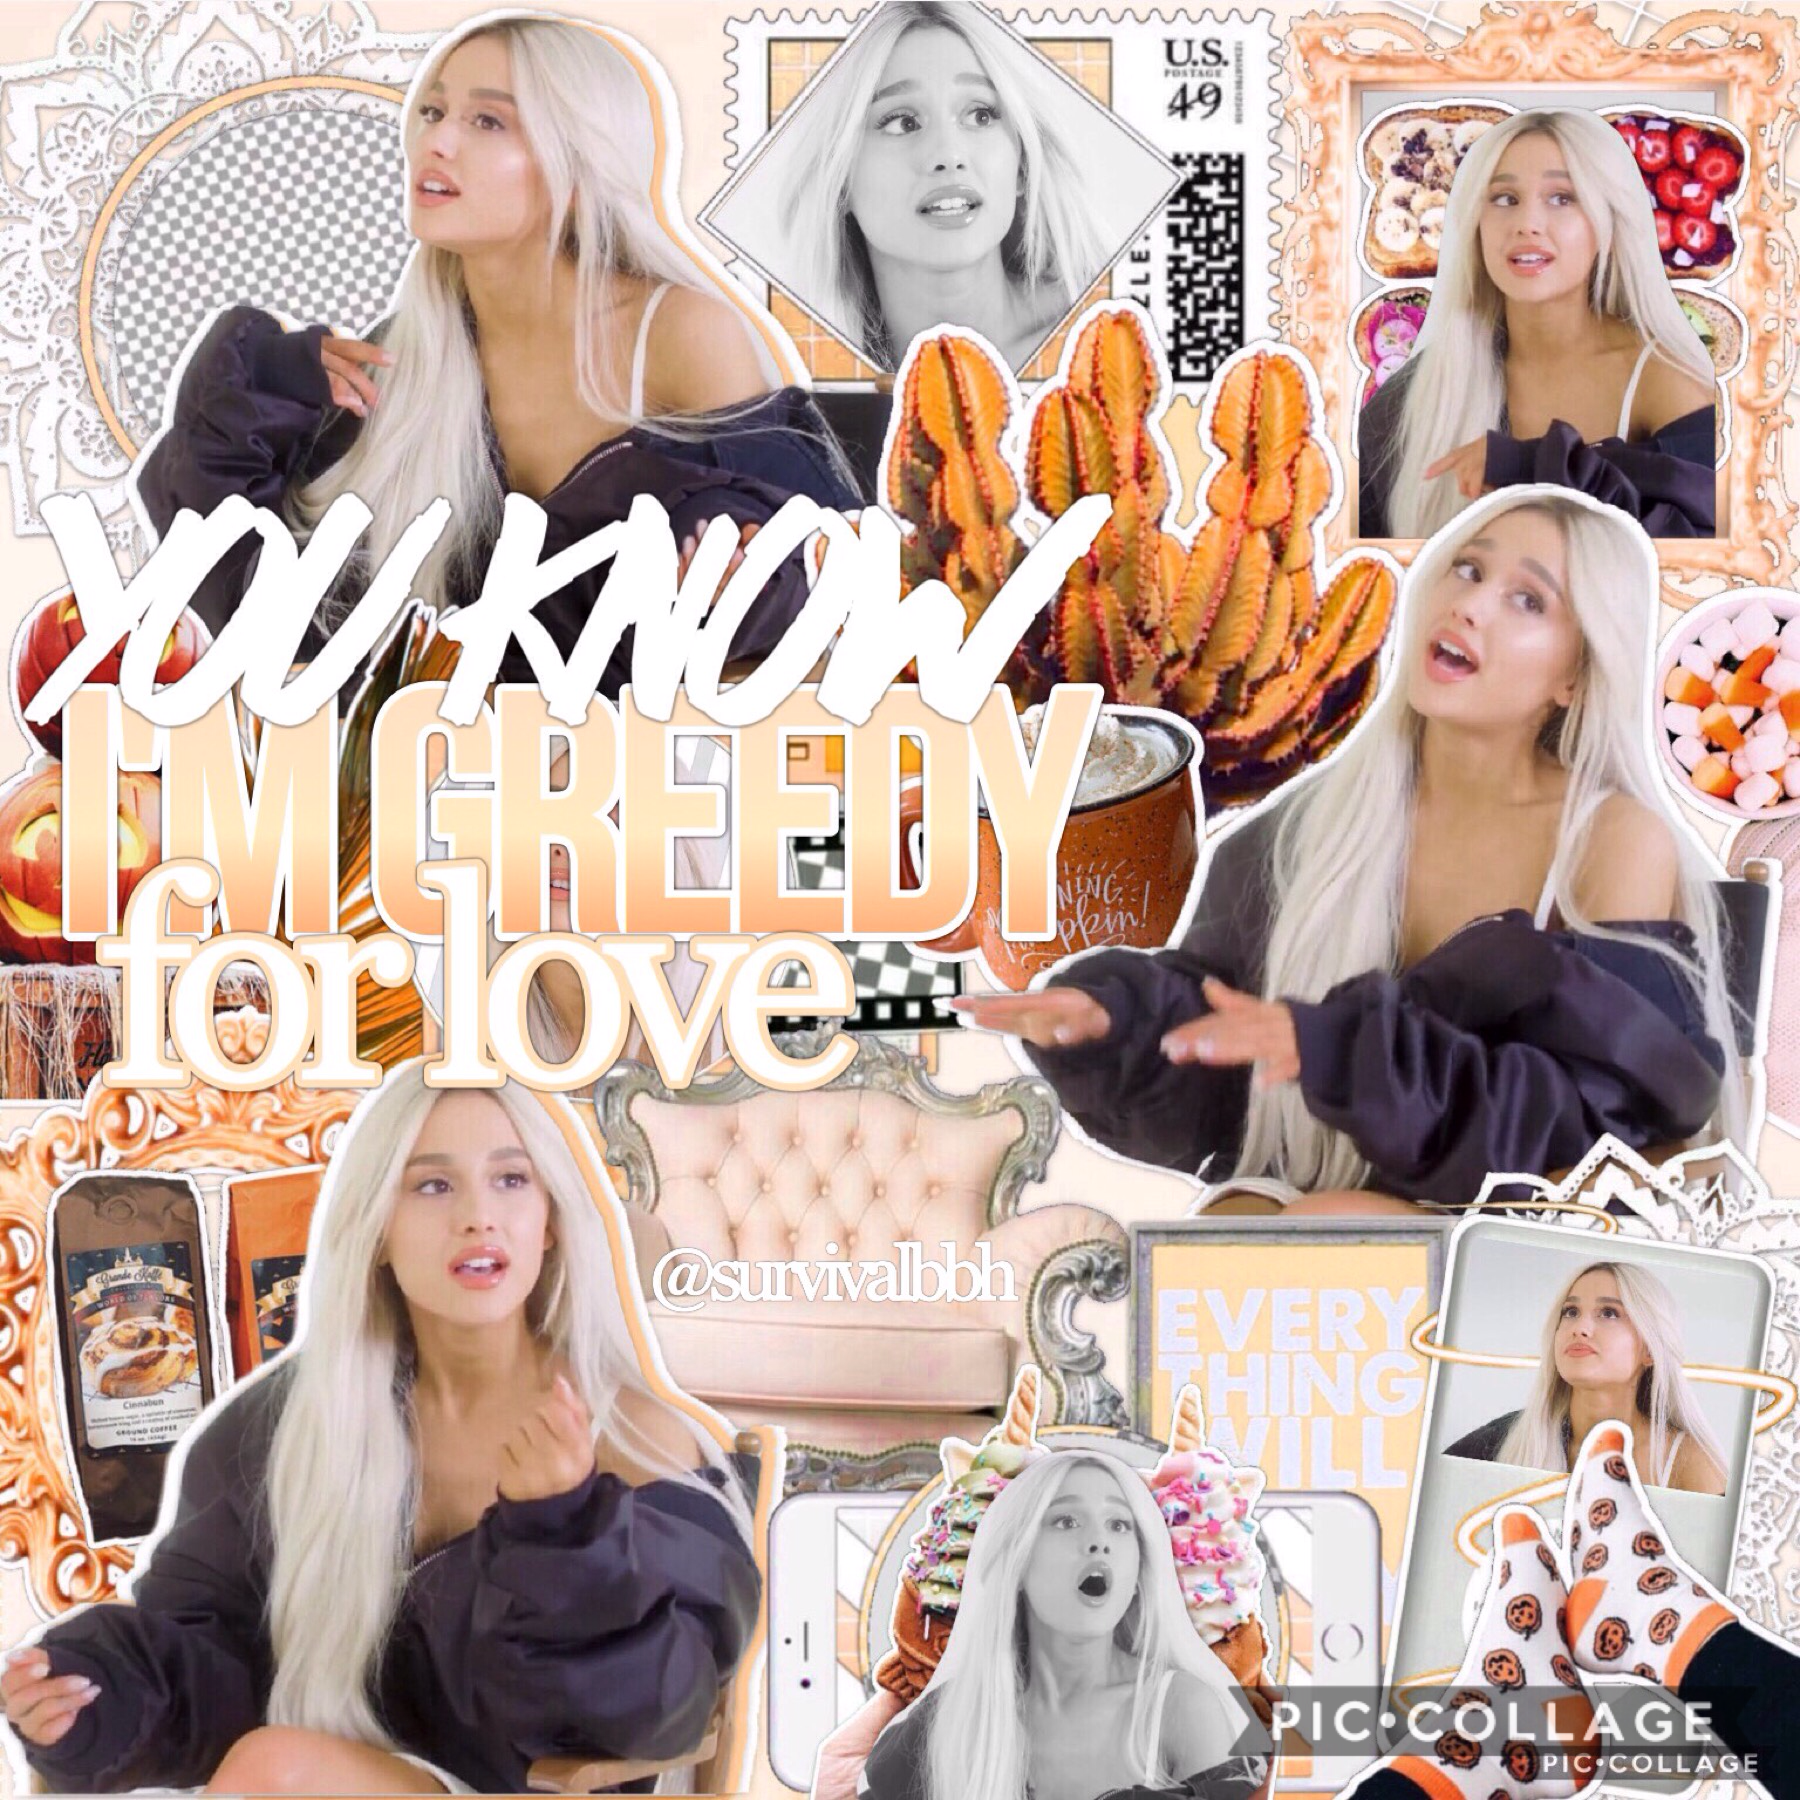 Just to let y'all know, it's fall guys NOT WINTER!!💛💛 anyways i hope you like this collage i made by myself after 3 months, and i'm so proud of it! ✨🙌🏼Let me know what you think in comments xx